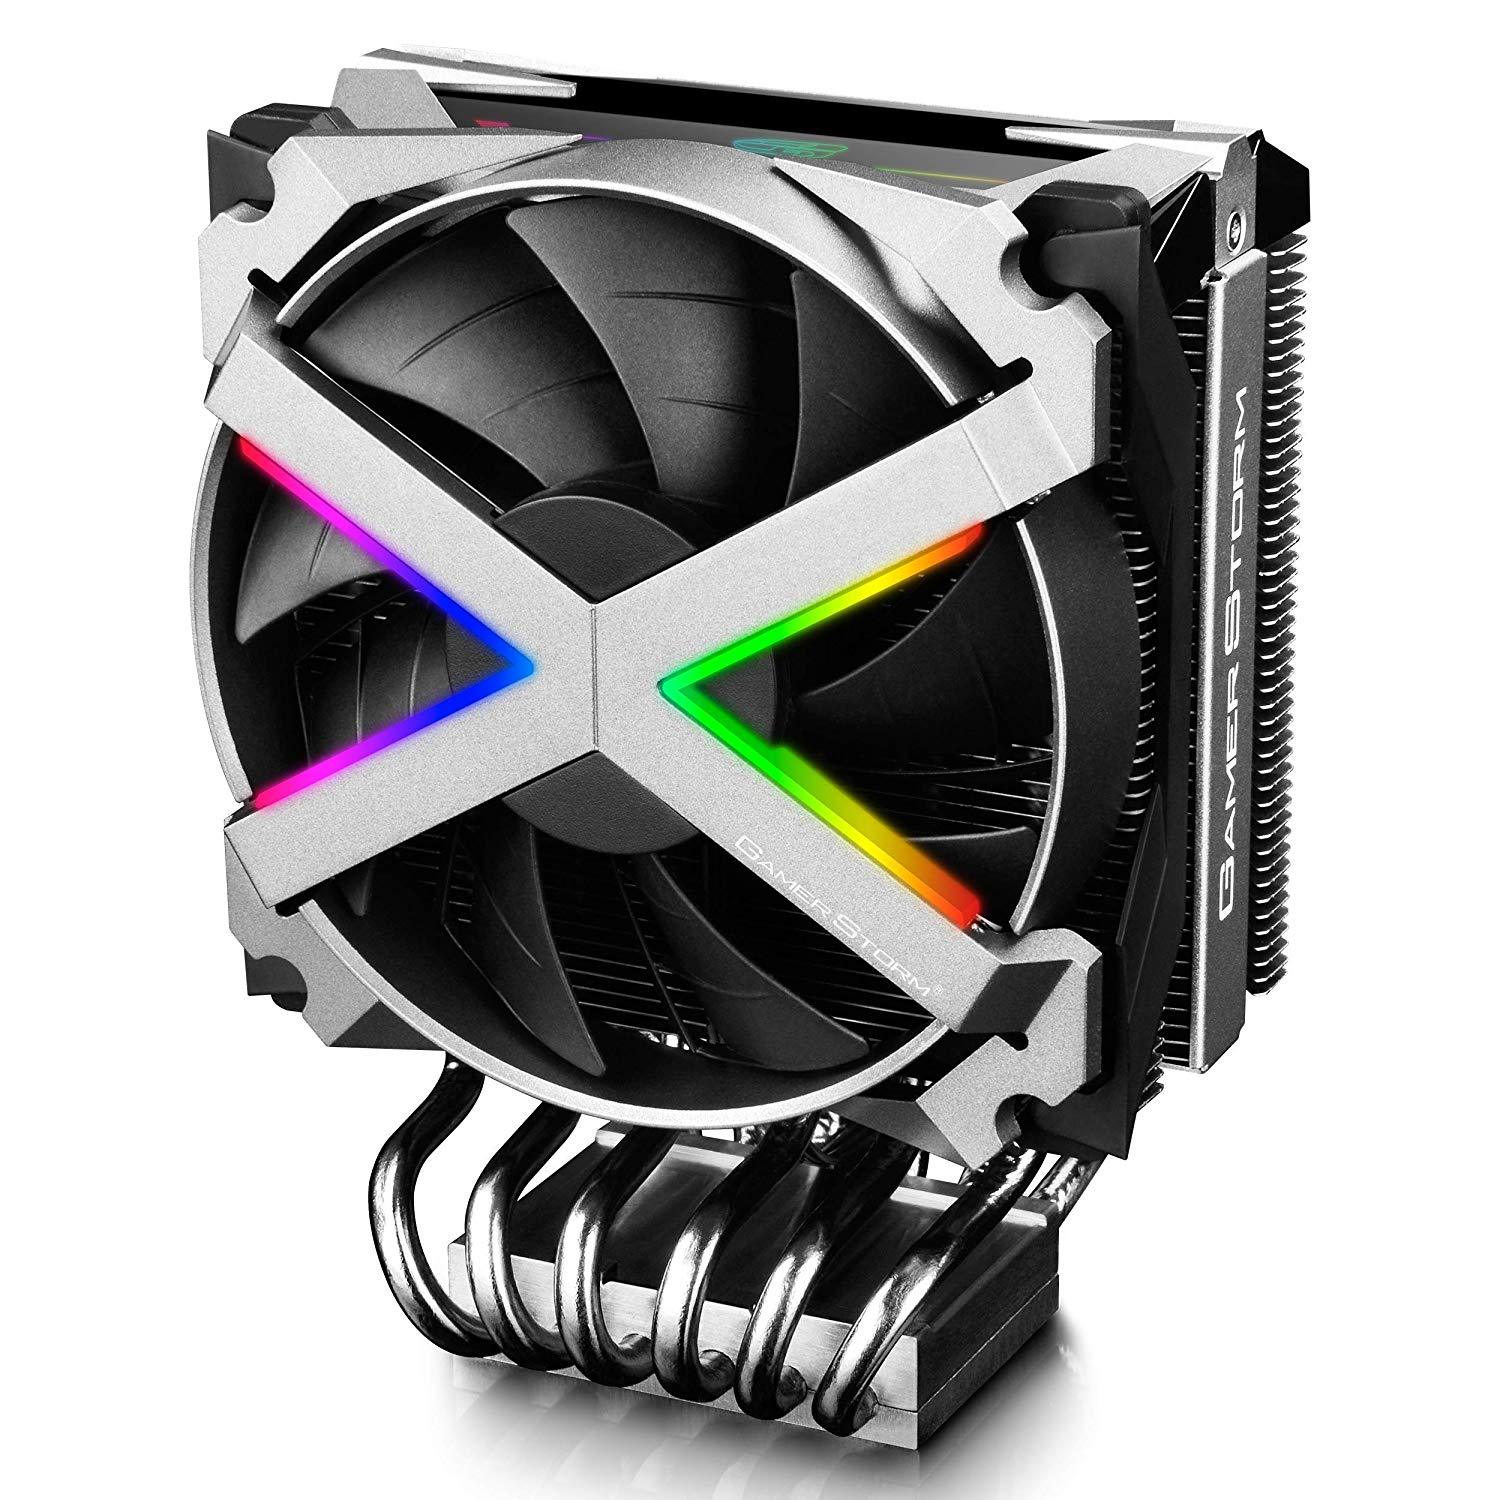 DeepCool Fryzen AMD TR4/AM4 - ARGB Air CPU Cooler